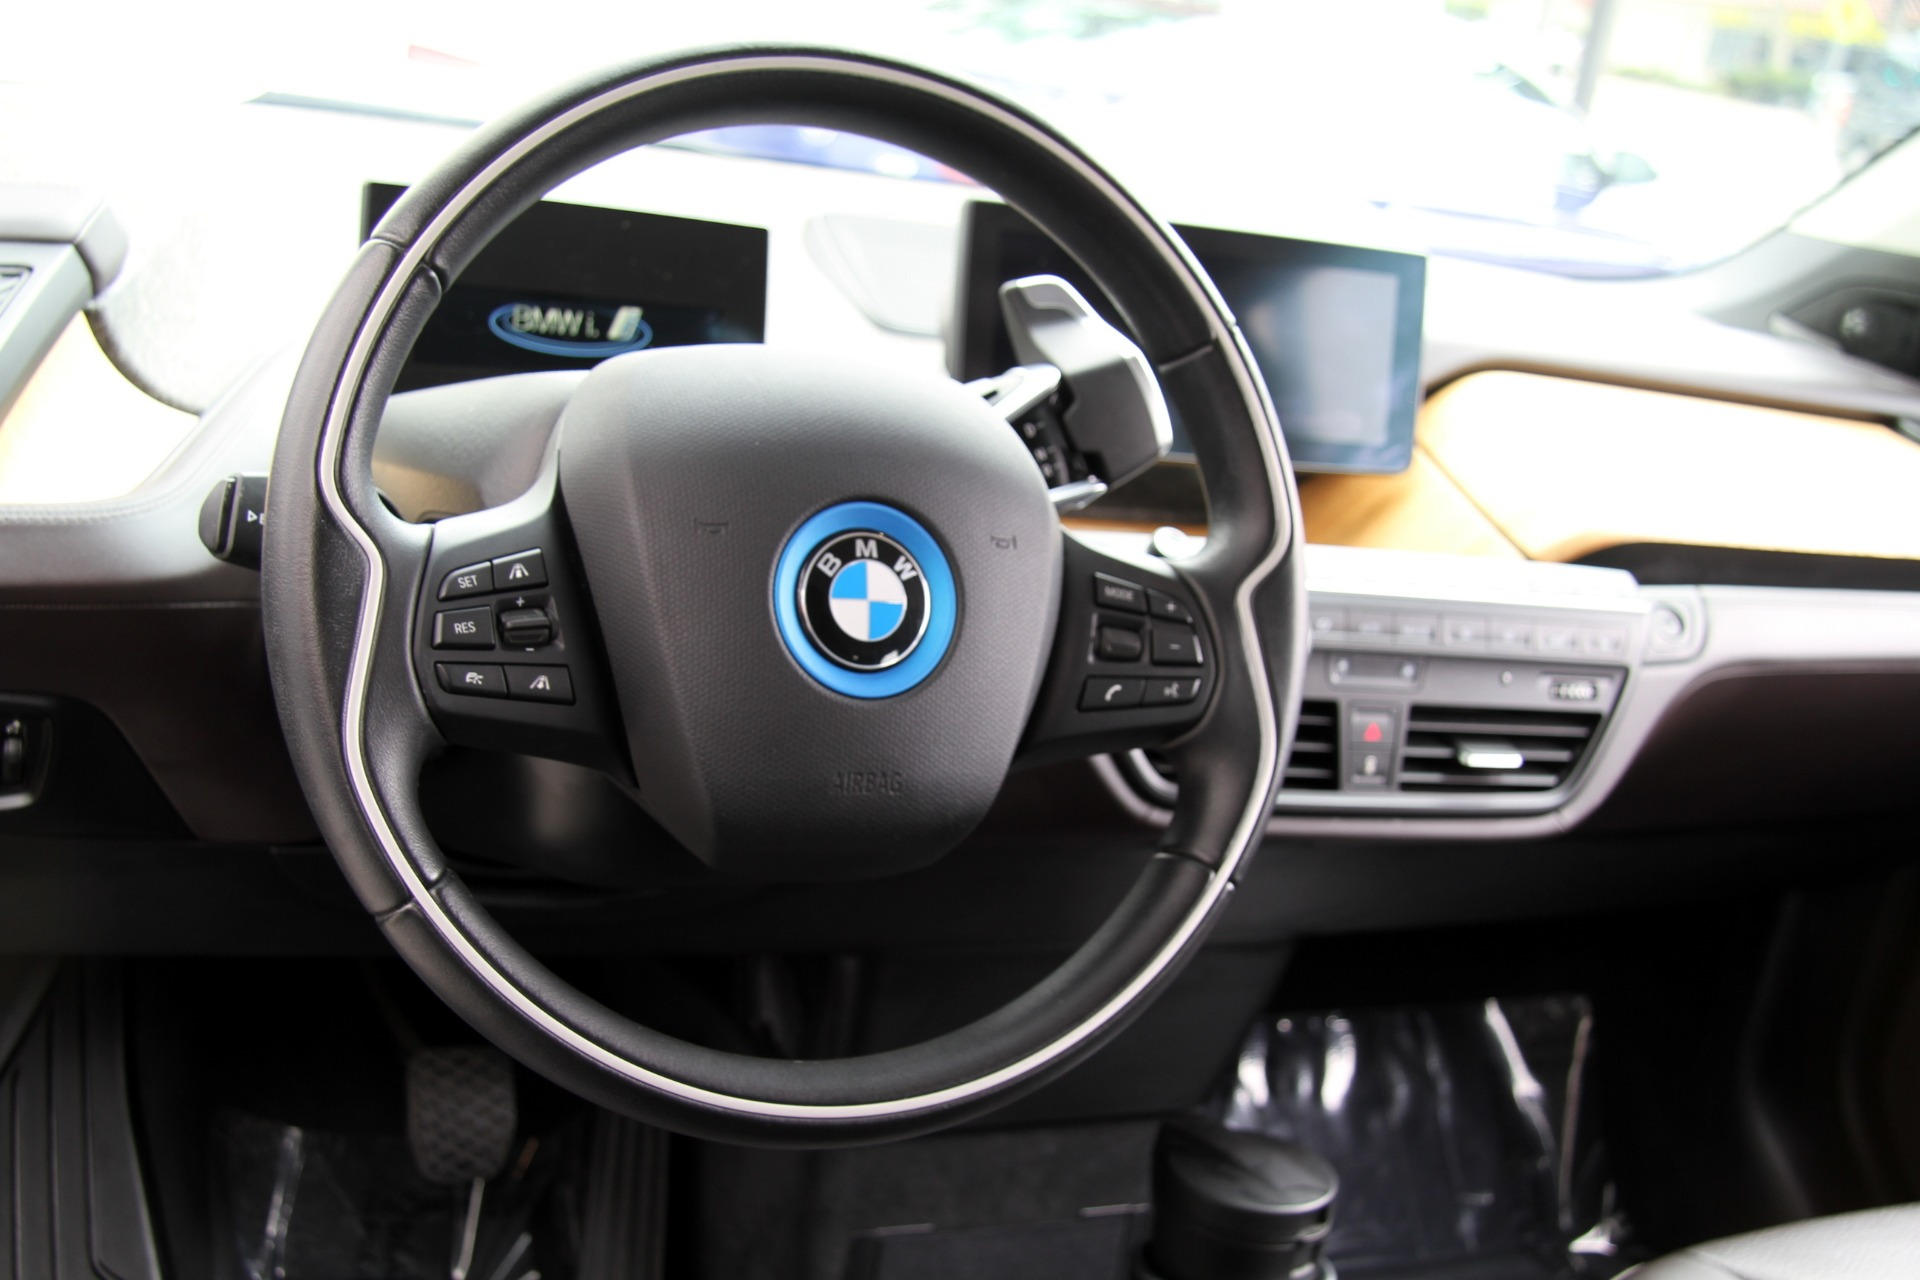 2015 Bmw I3 Tera World With Range Extender Stock 6179